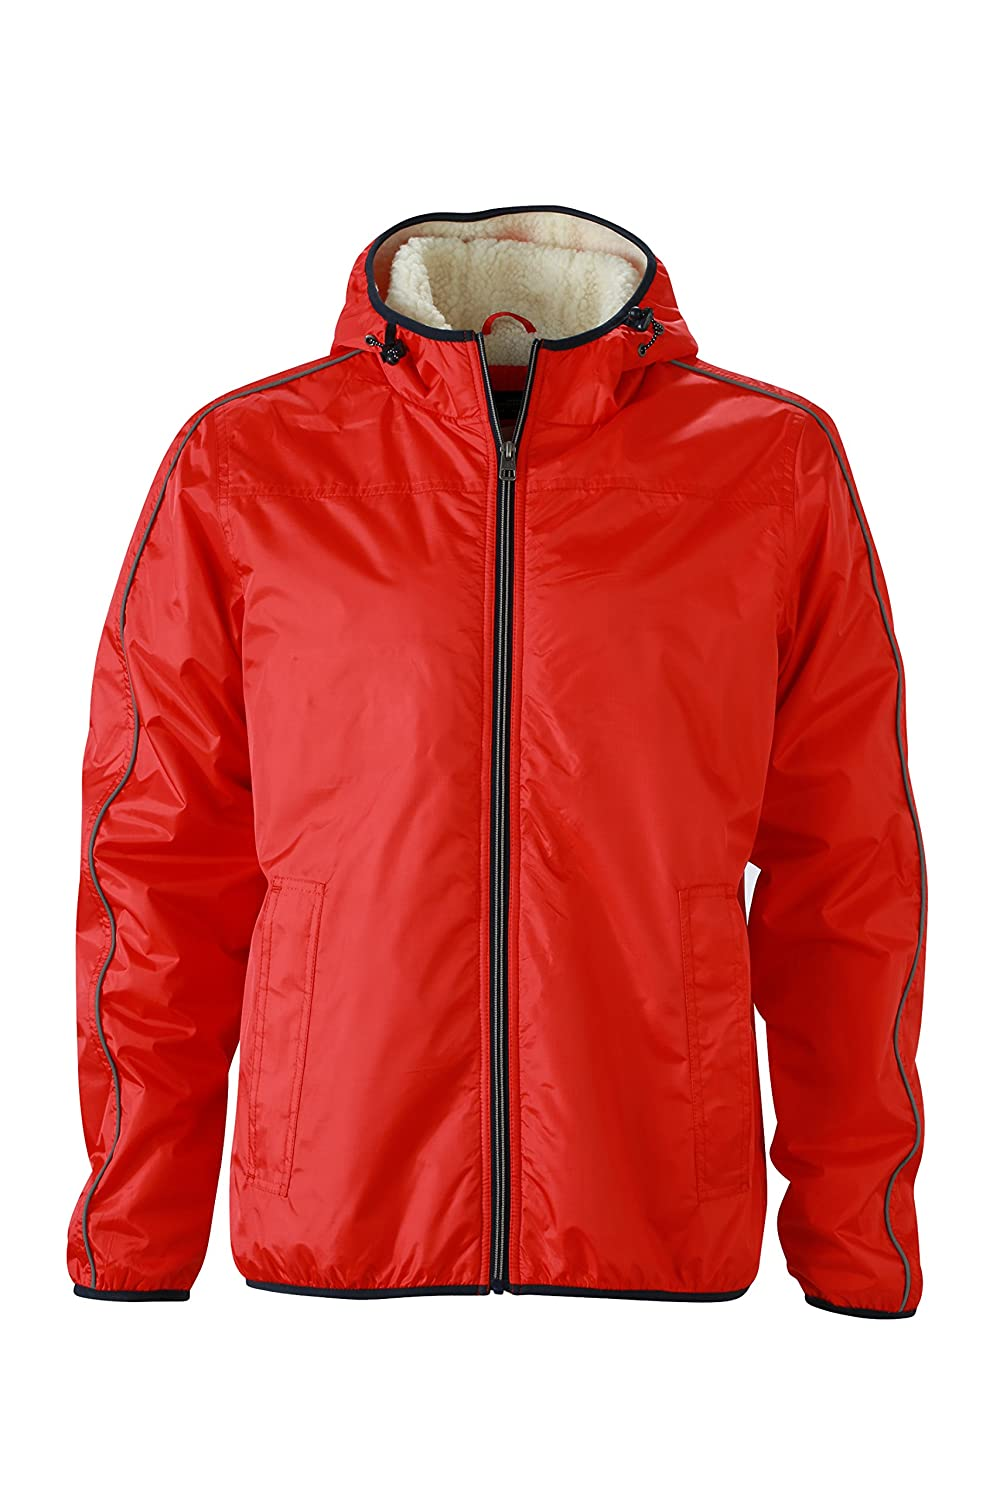 James & Nicholson Men's Jacke Winter Sports Jacket - Jacket